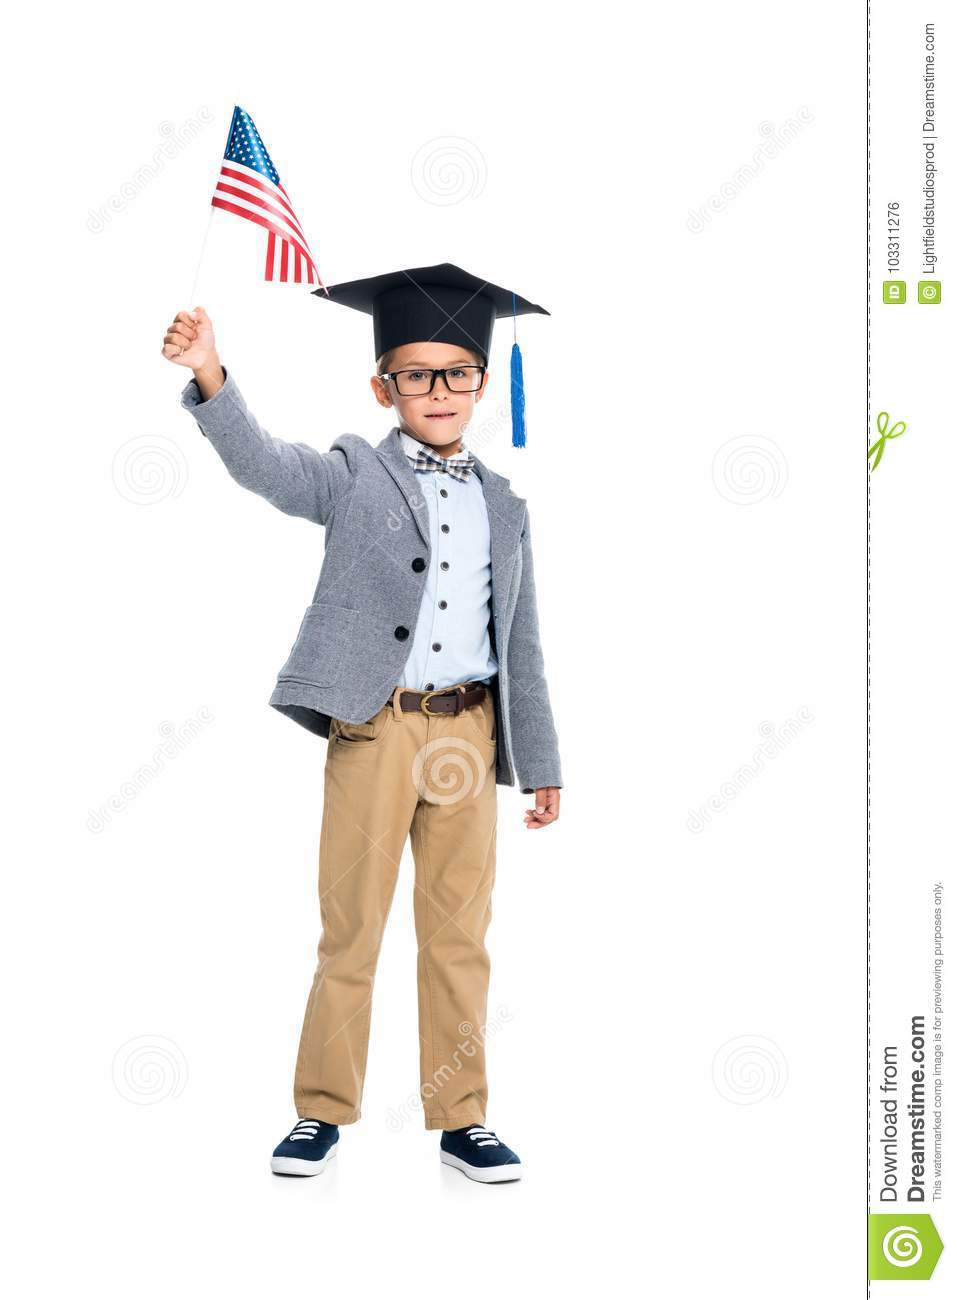 Schoolboy With Usa Flag And Graduation Hat Stock Photo - Image of ... 8063ddf624f